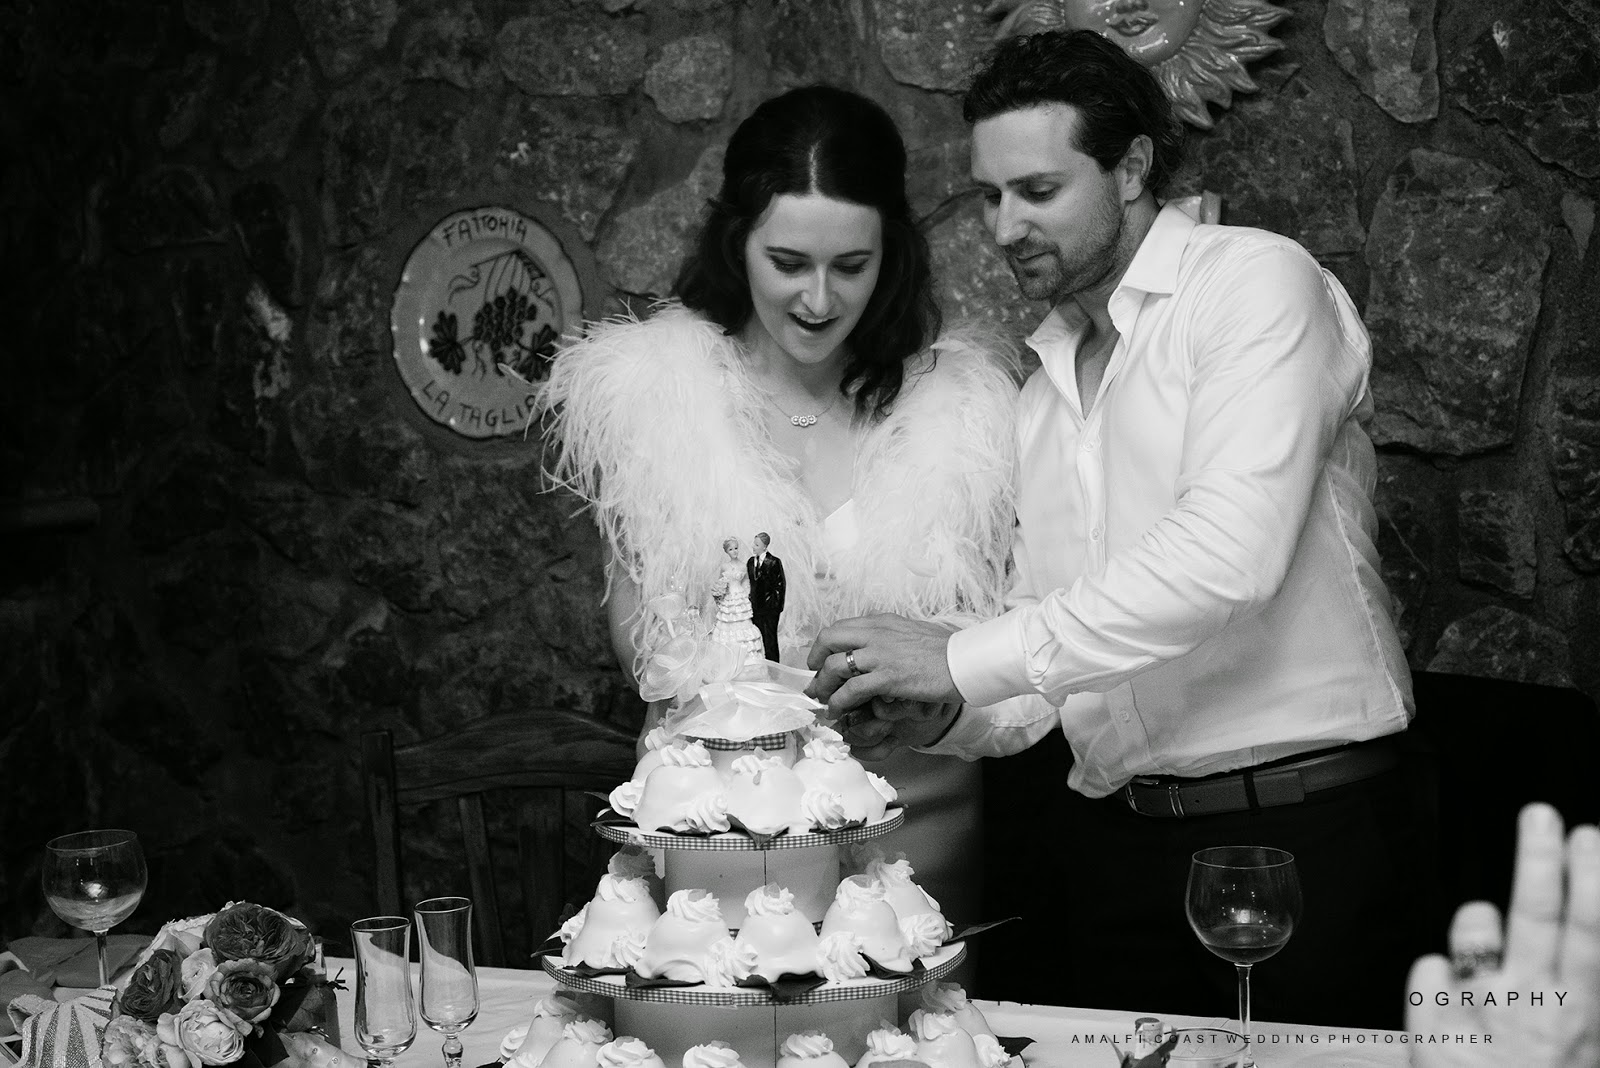 Bride and groom cutting the wedding cake in Positano